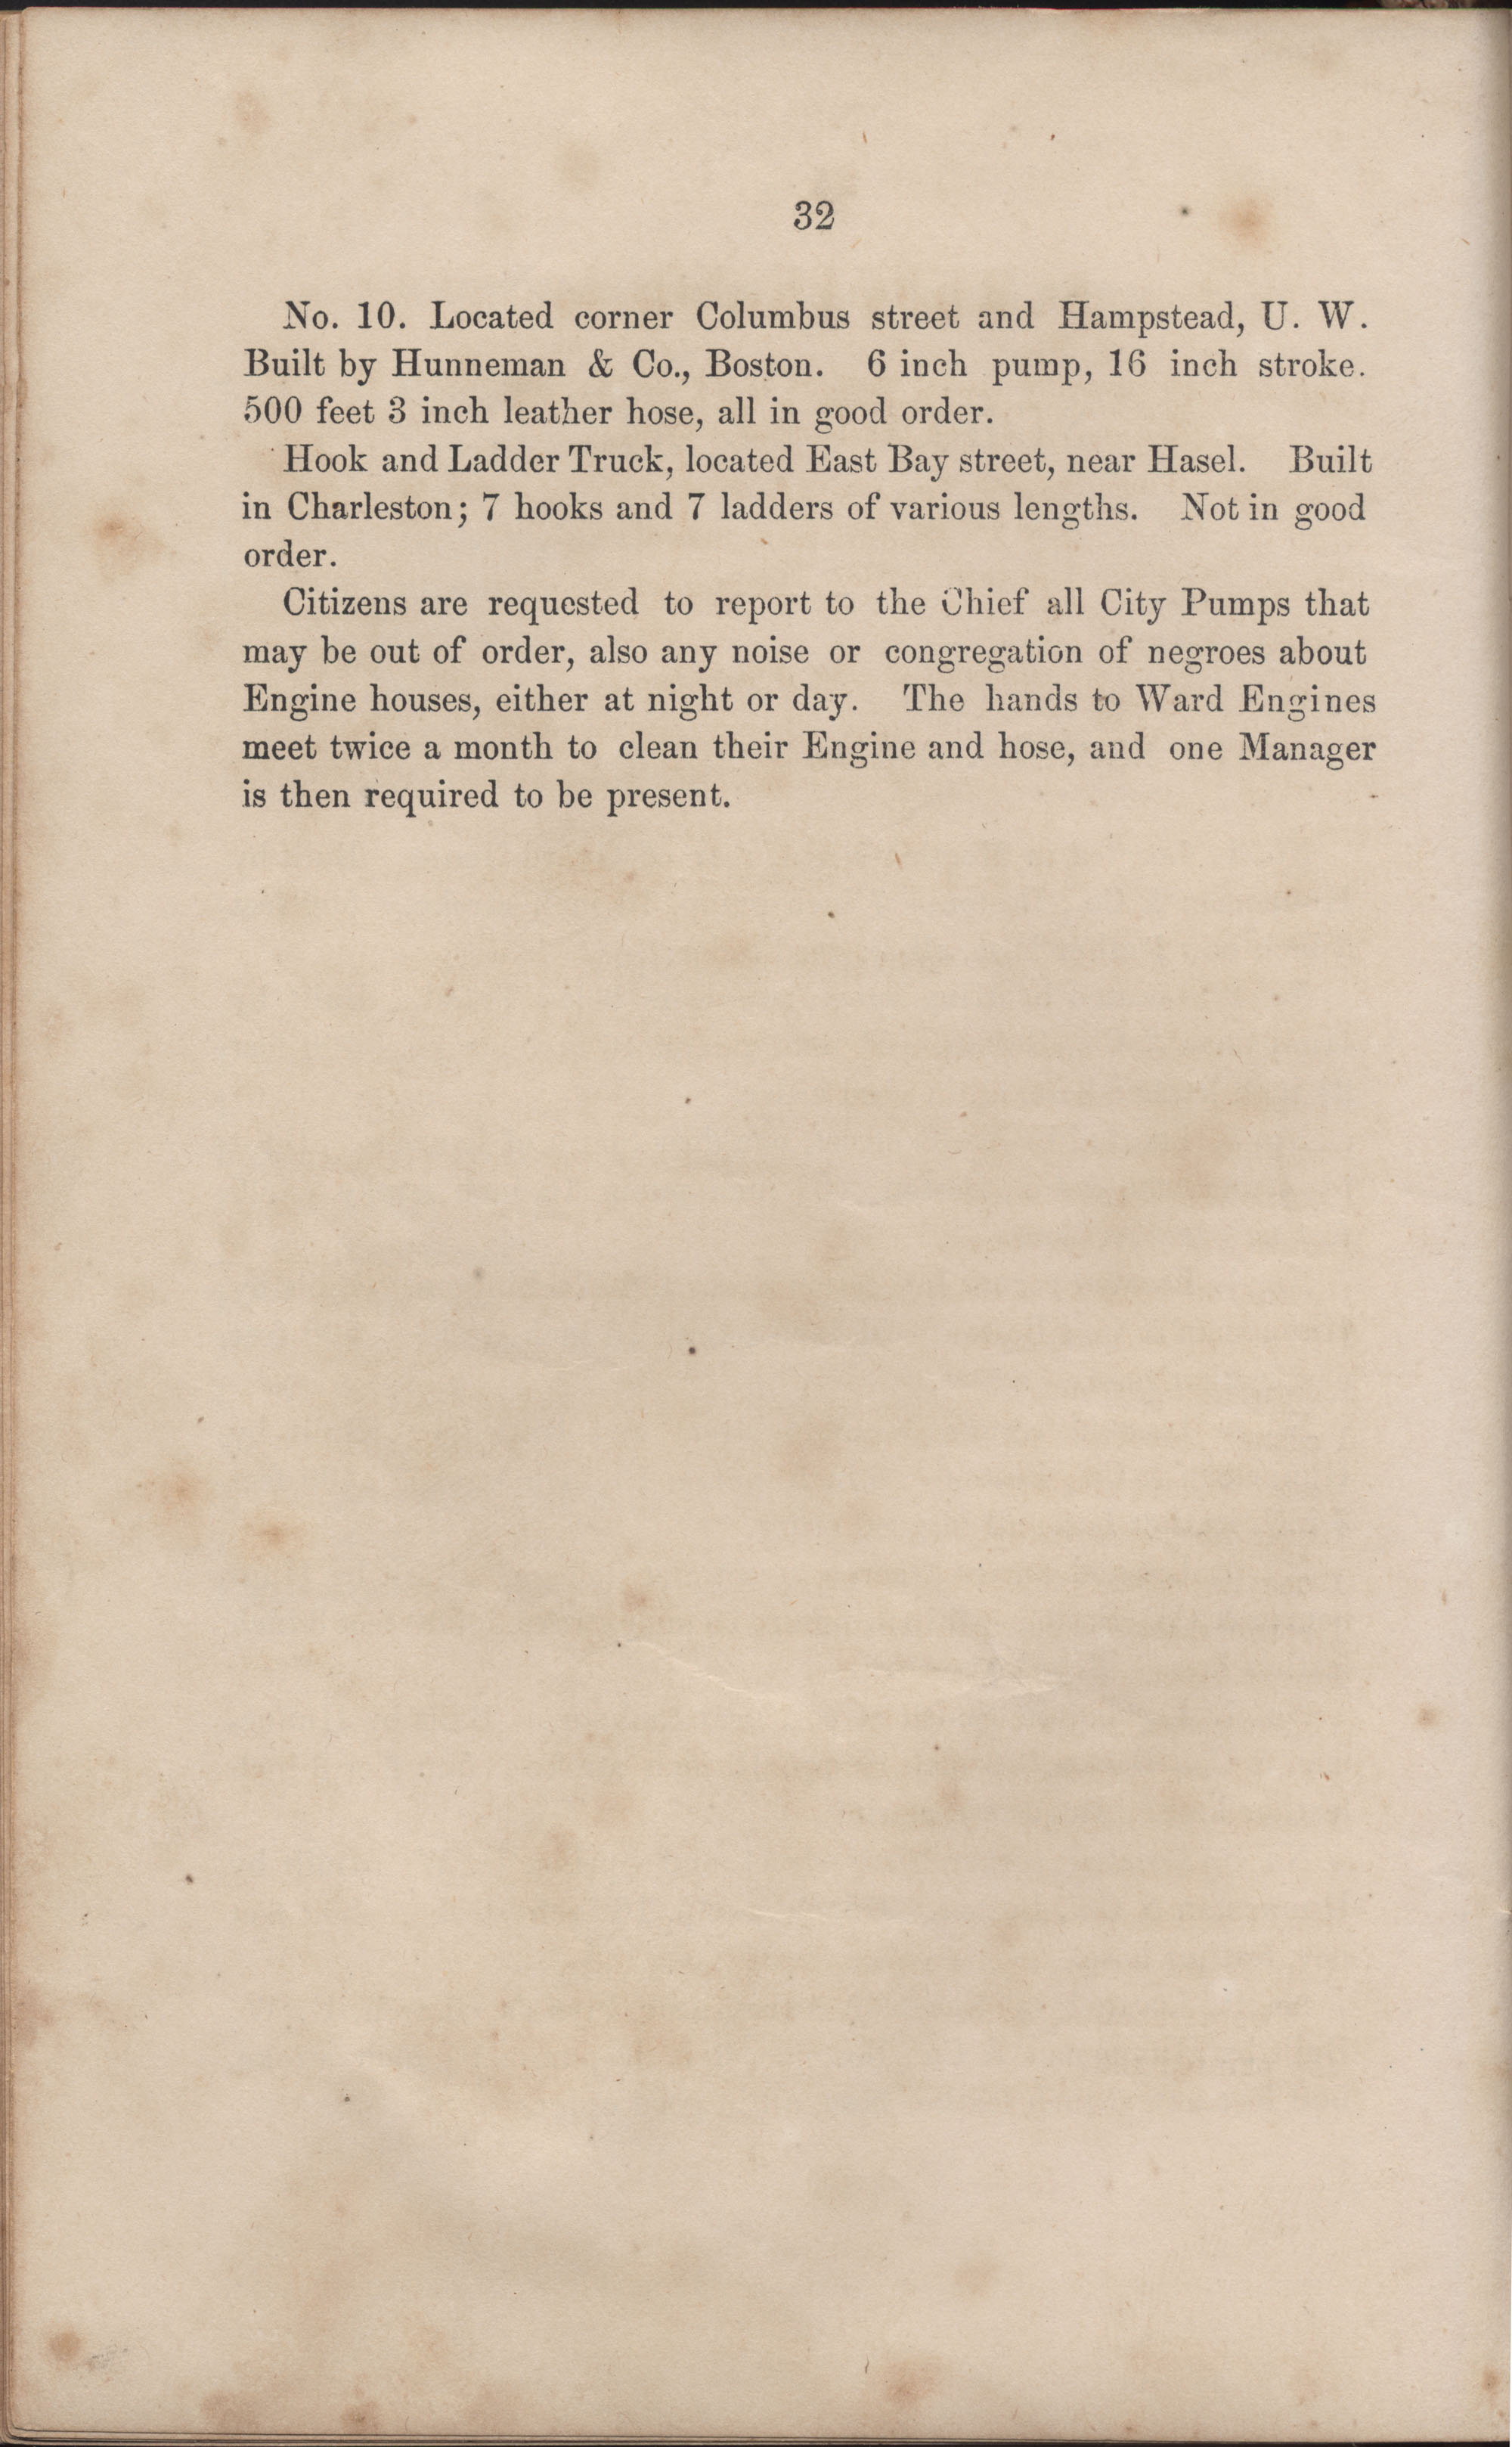 Annual Report of the Chief of the Fire Department of the City of Charleston, page 58